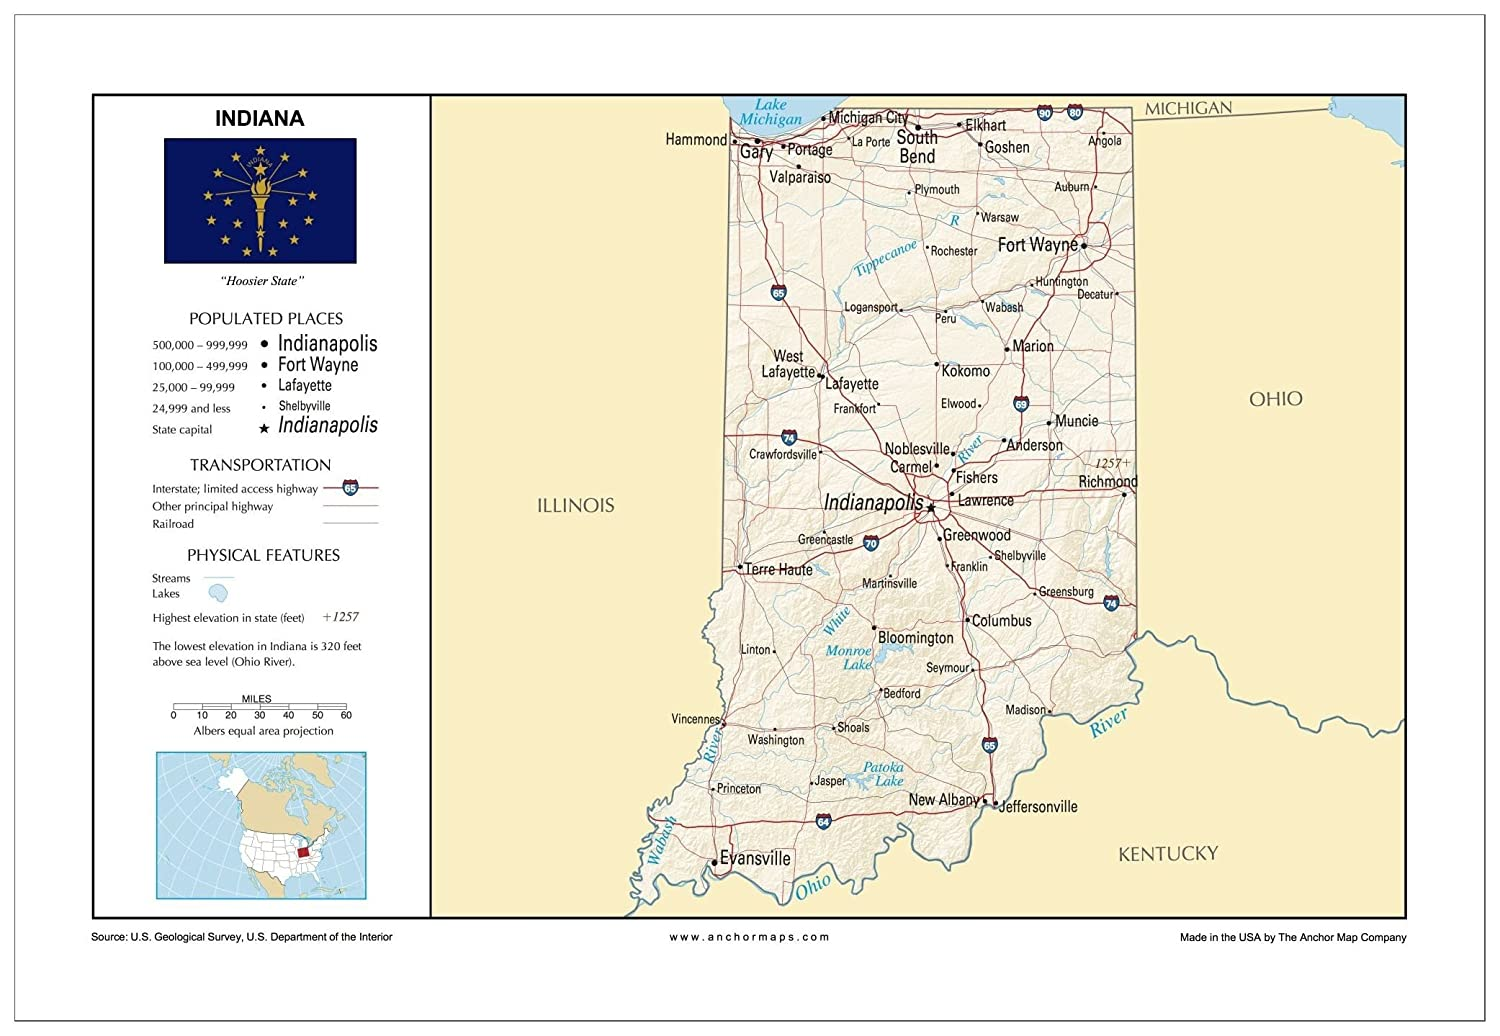 Amazon.com : 13x19 Indiana General Reference Wall Map ...